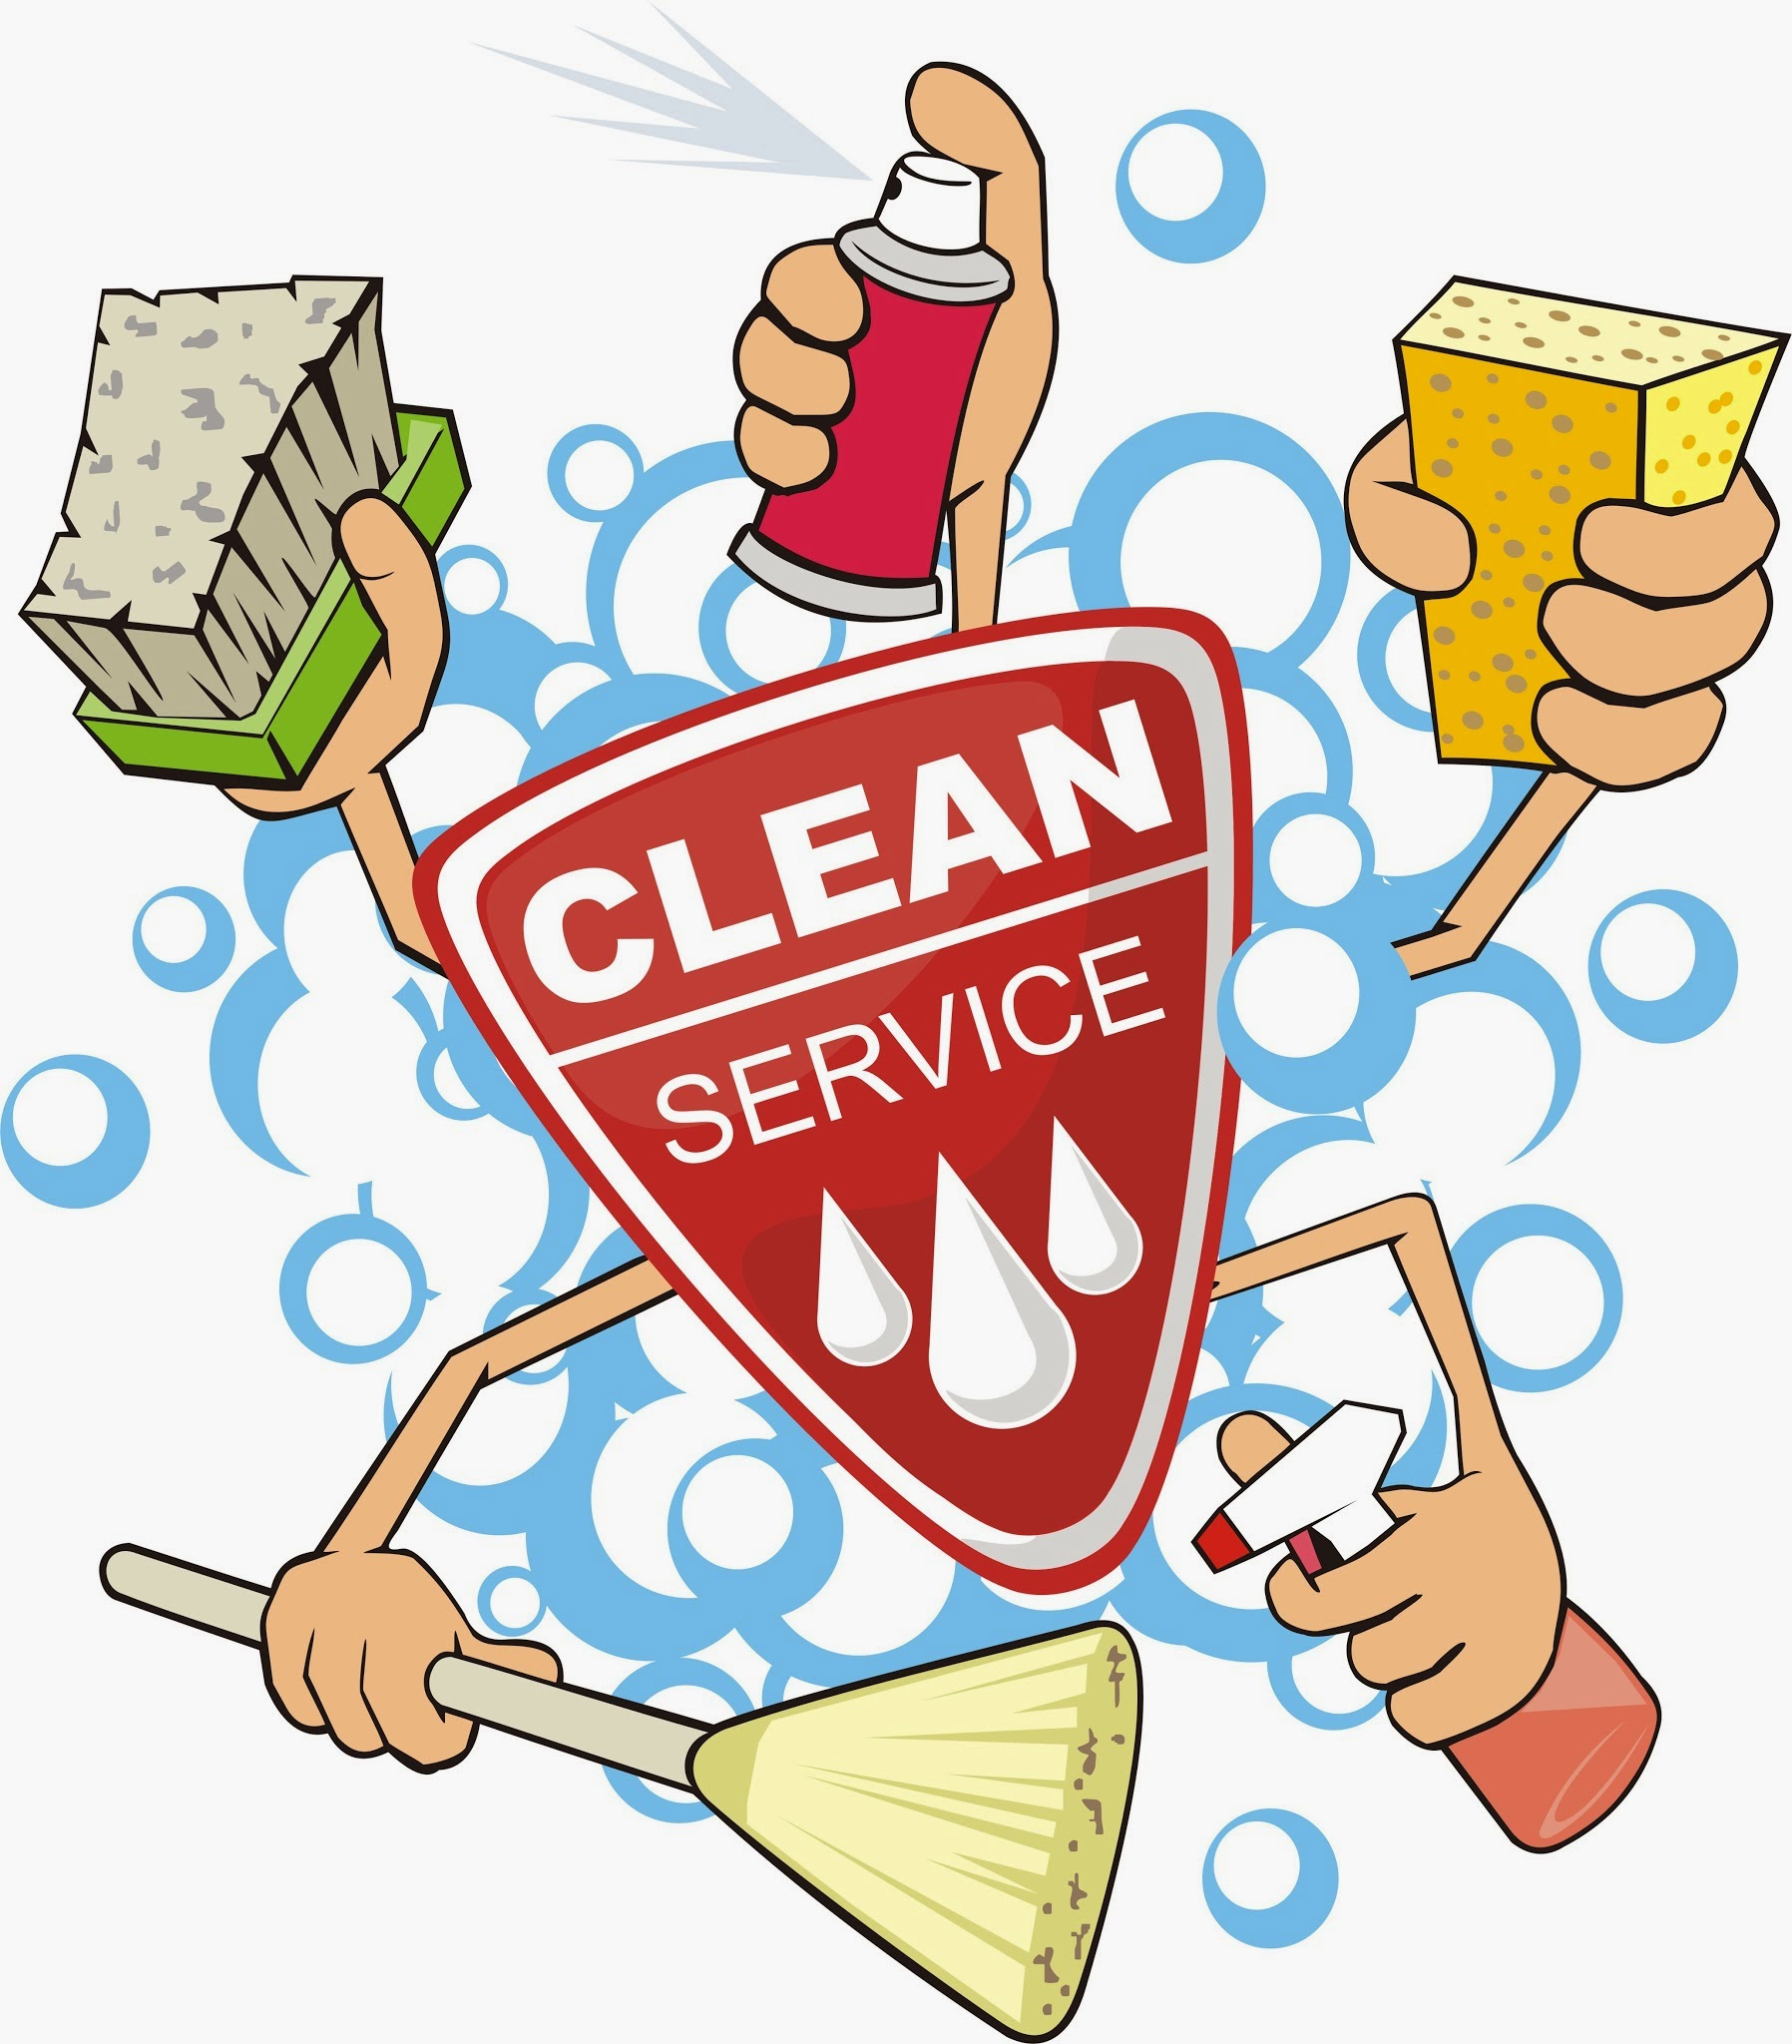 Free Cleaning Business Pictures, Download Free Clip Art, Free Clip.